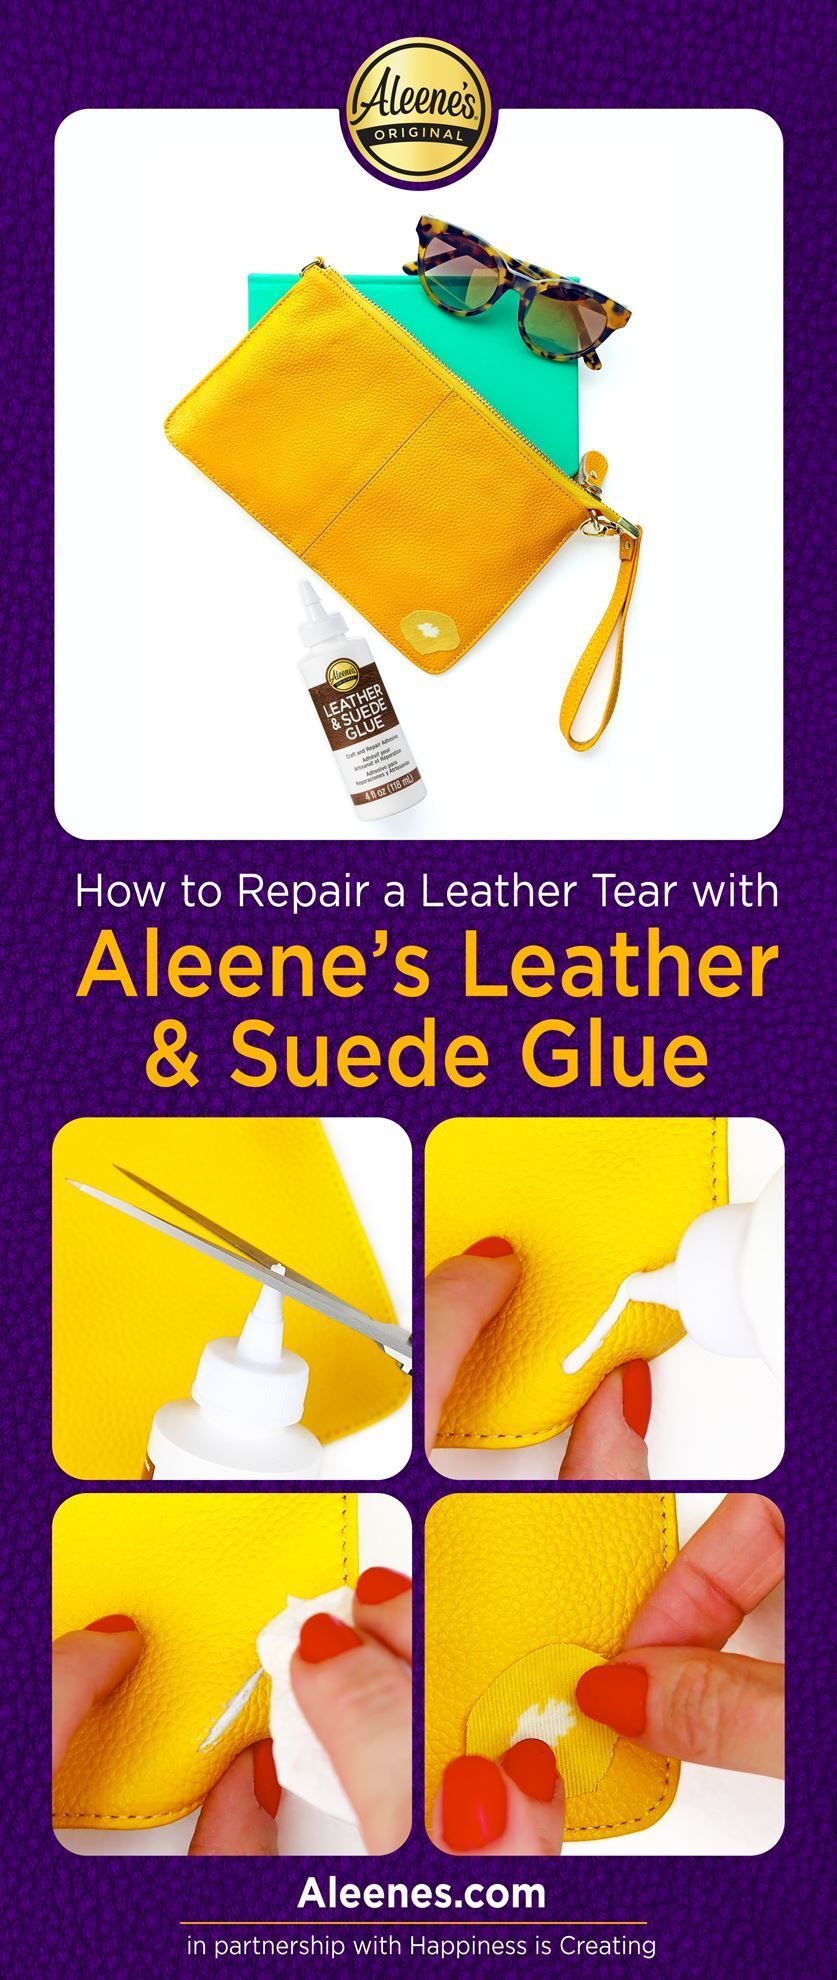 How To Repair a Leather Tear with Leather Glue